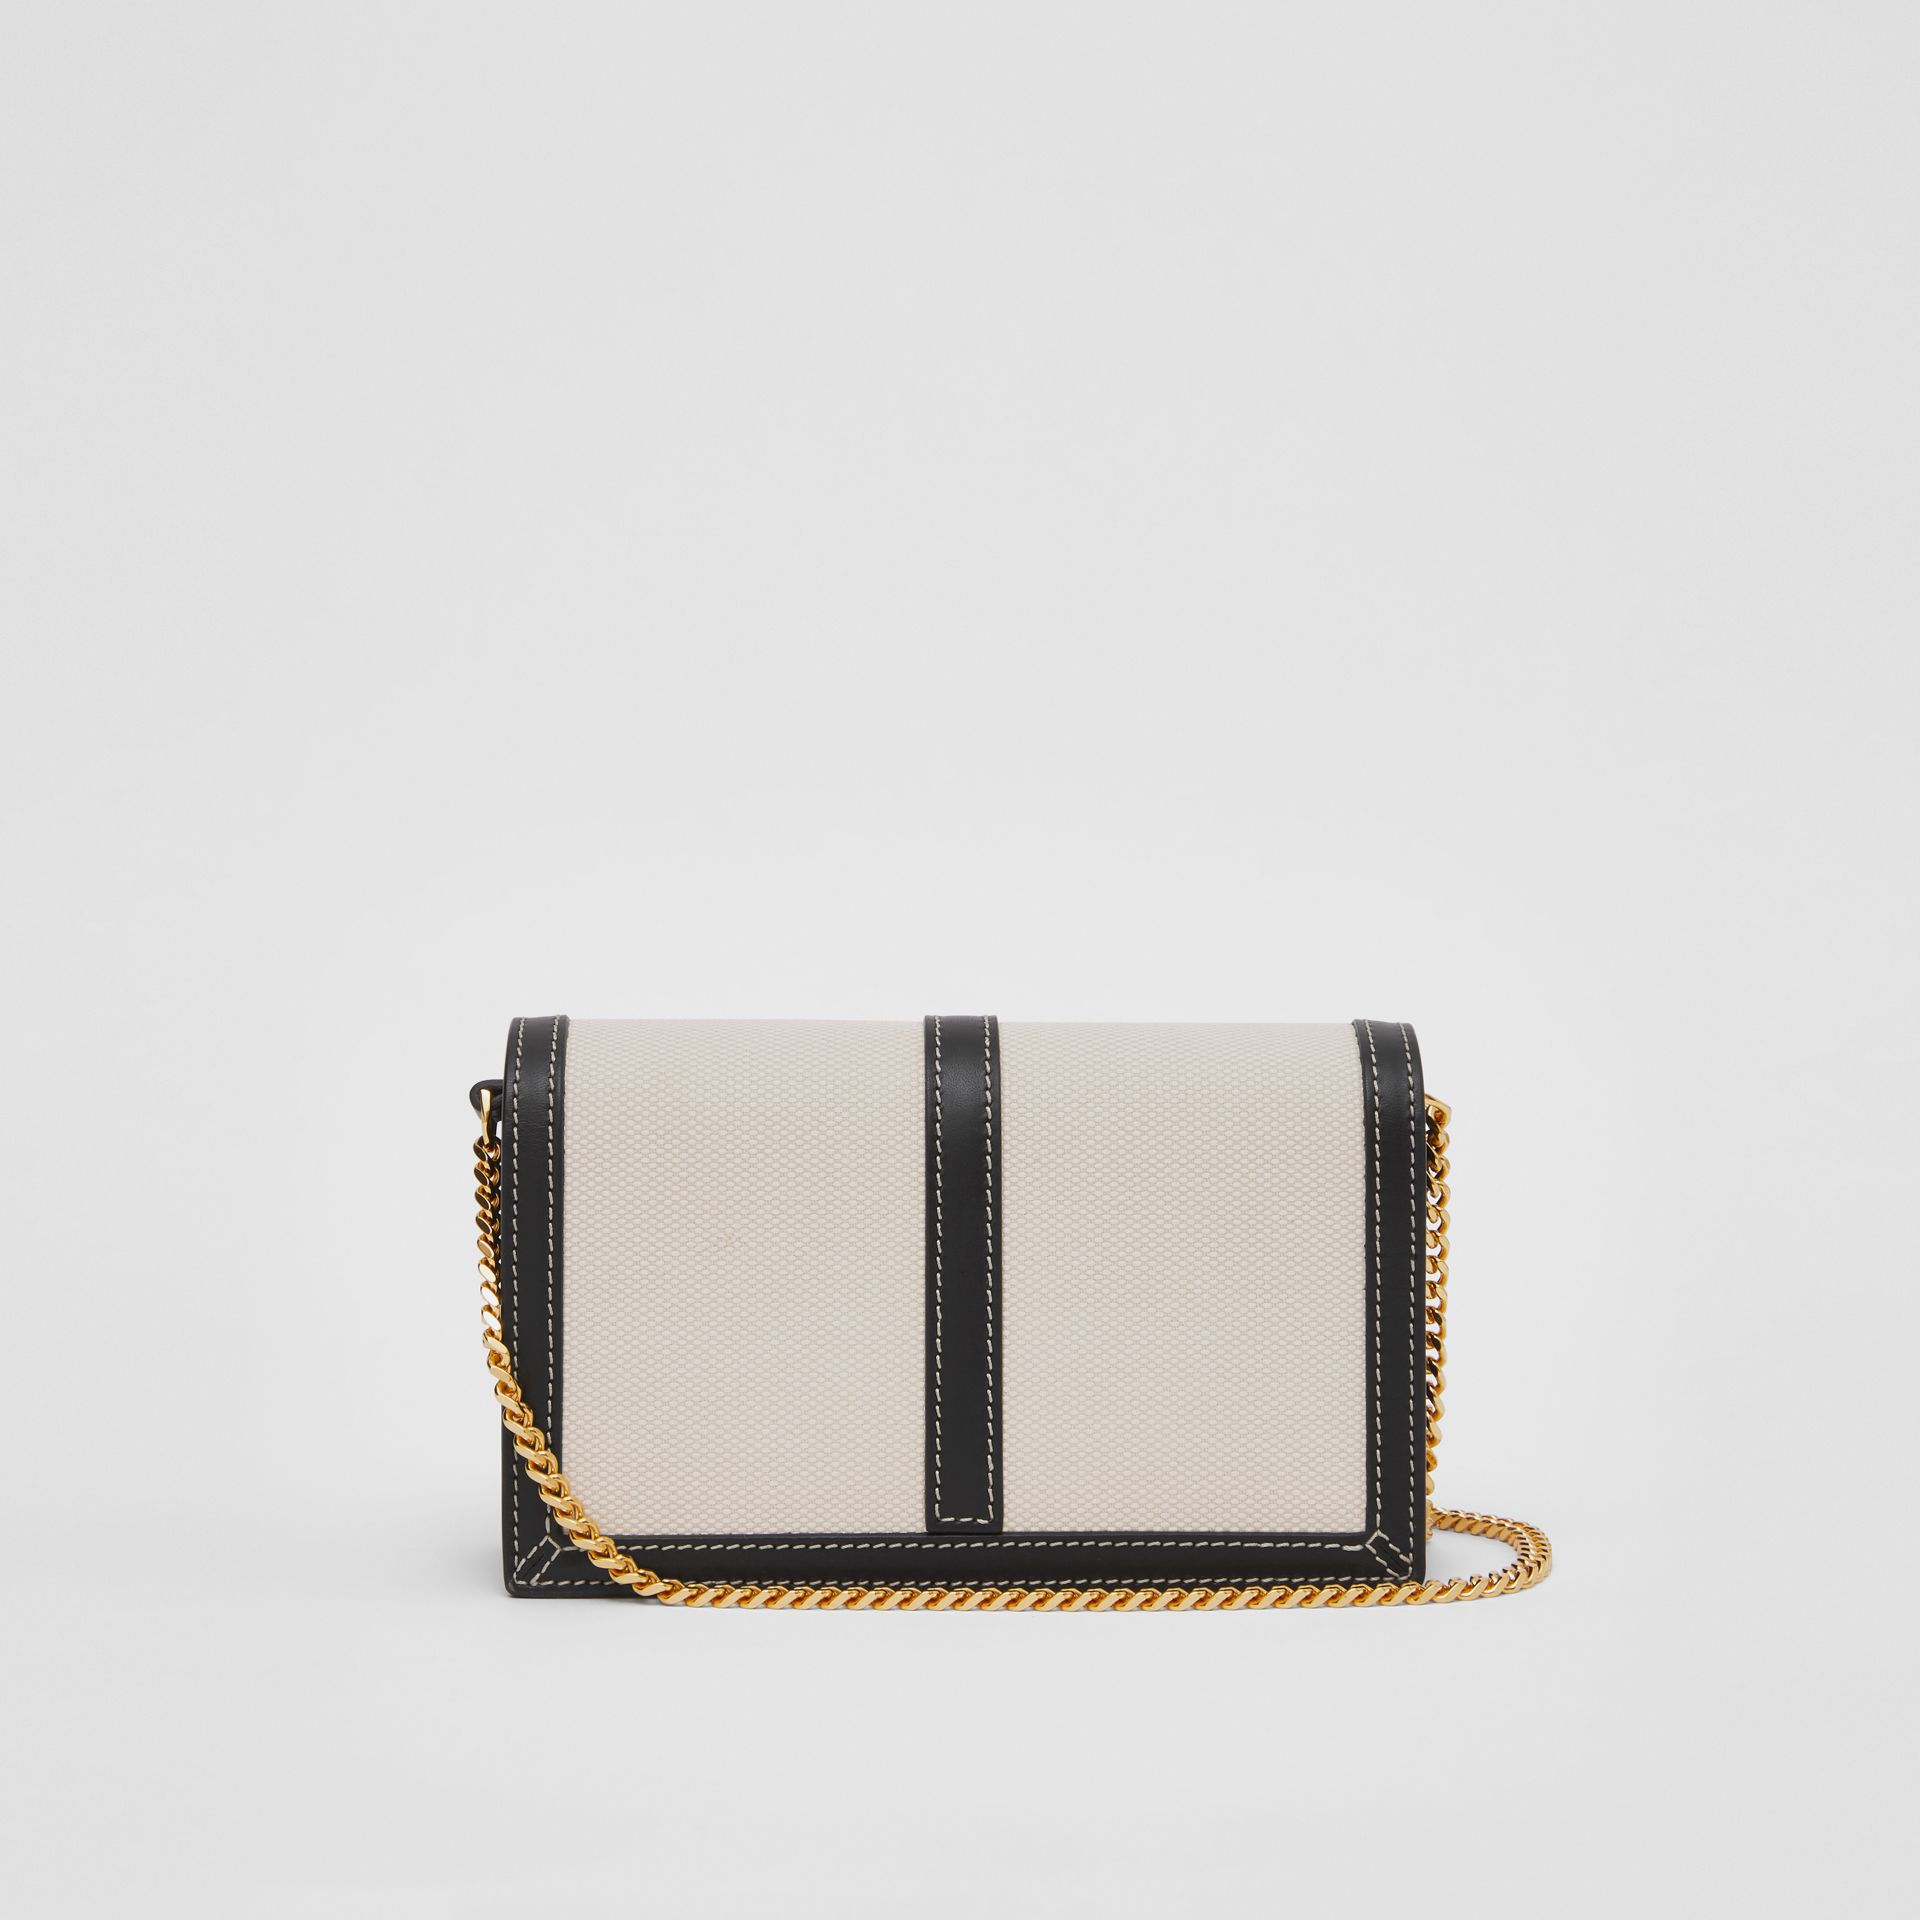 Mini Canvas and Leather TB Envelope Clutch in Tan - Women | Burberry Australia - gallery image 5